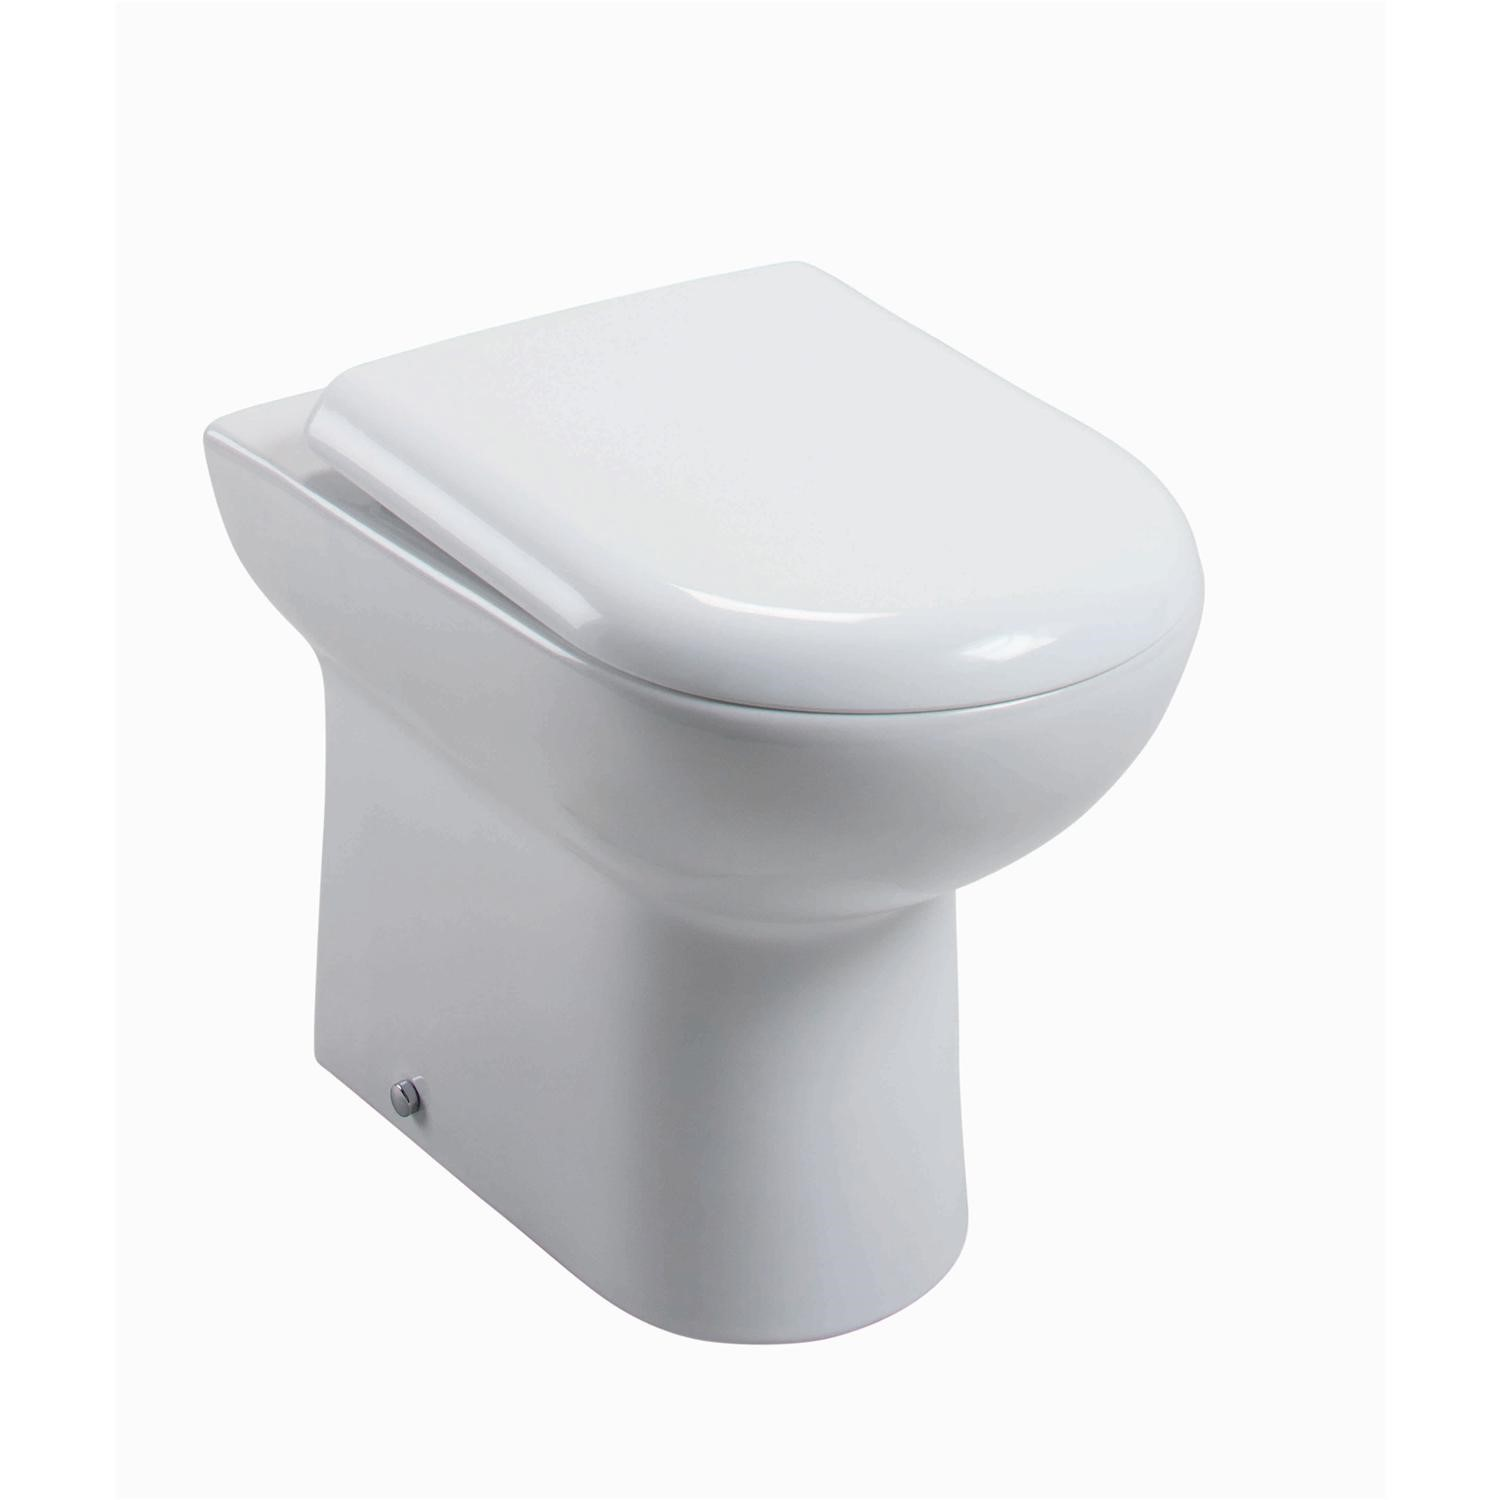 Groovy D Shaped Soft Close Quick Release Toilet Seat Onthecornerstone Fun Painted Chair Ideas Images Onthecornerstoneorg